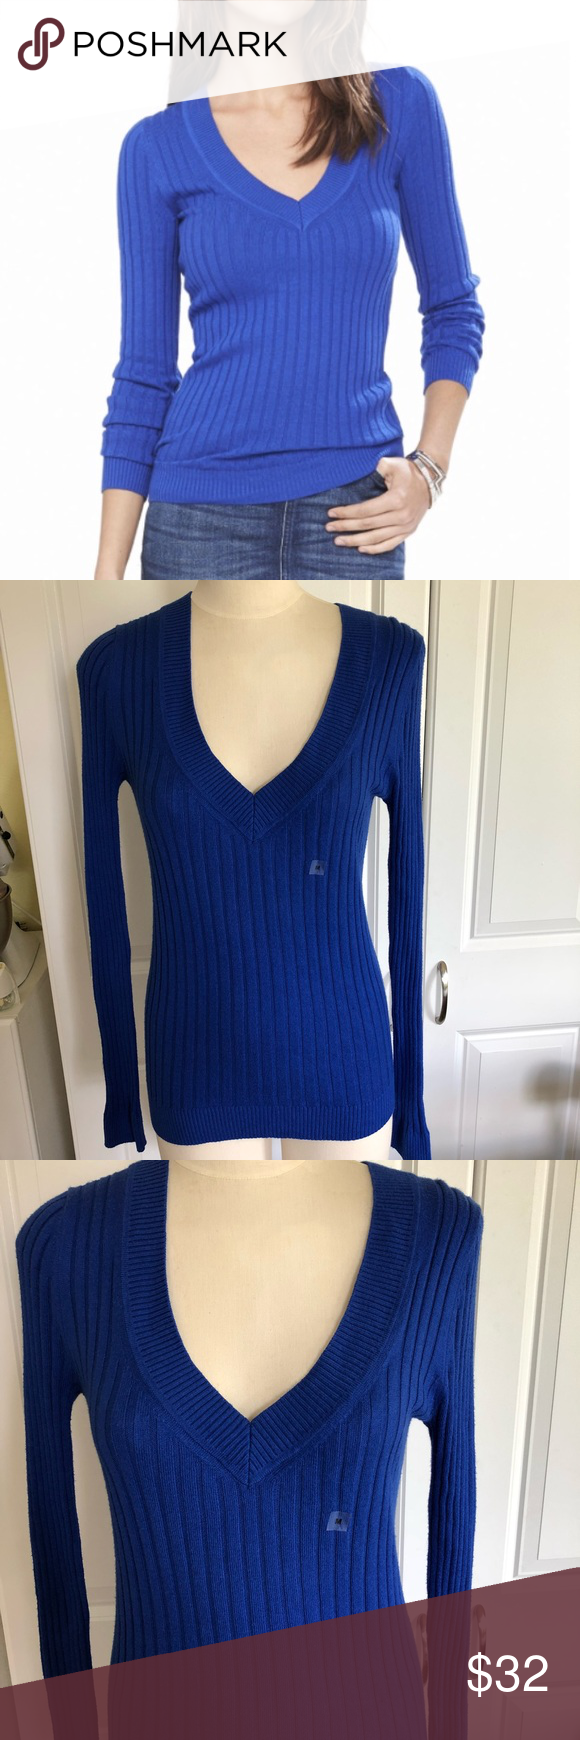 ae0f2848b6a Express Ribbed V Neck Sweater Express Ribbed V Neck Sweater NWOT Unwashed  unworn Fitted Cobalt blue Light weight Extra long sleeves  Cotton Rayon Nylon ...